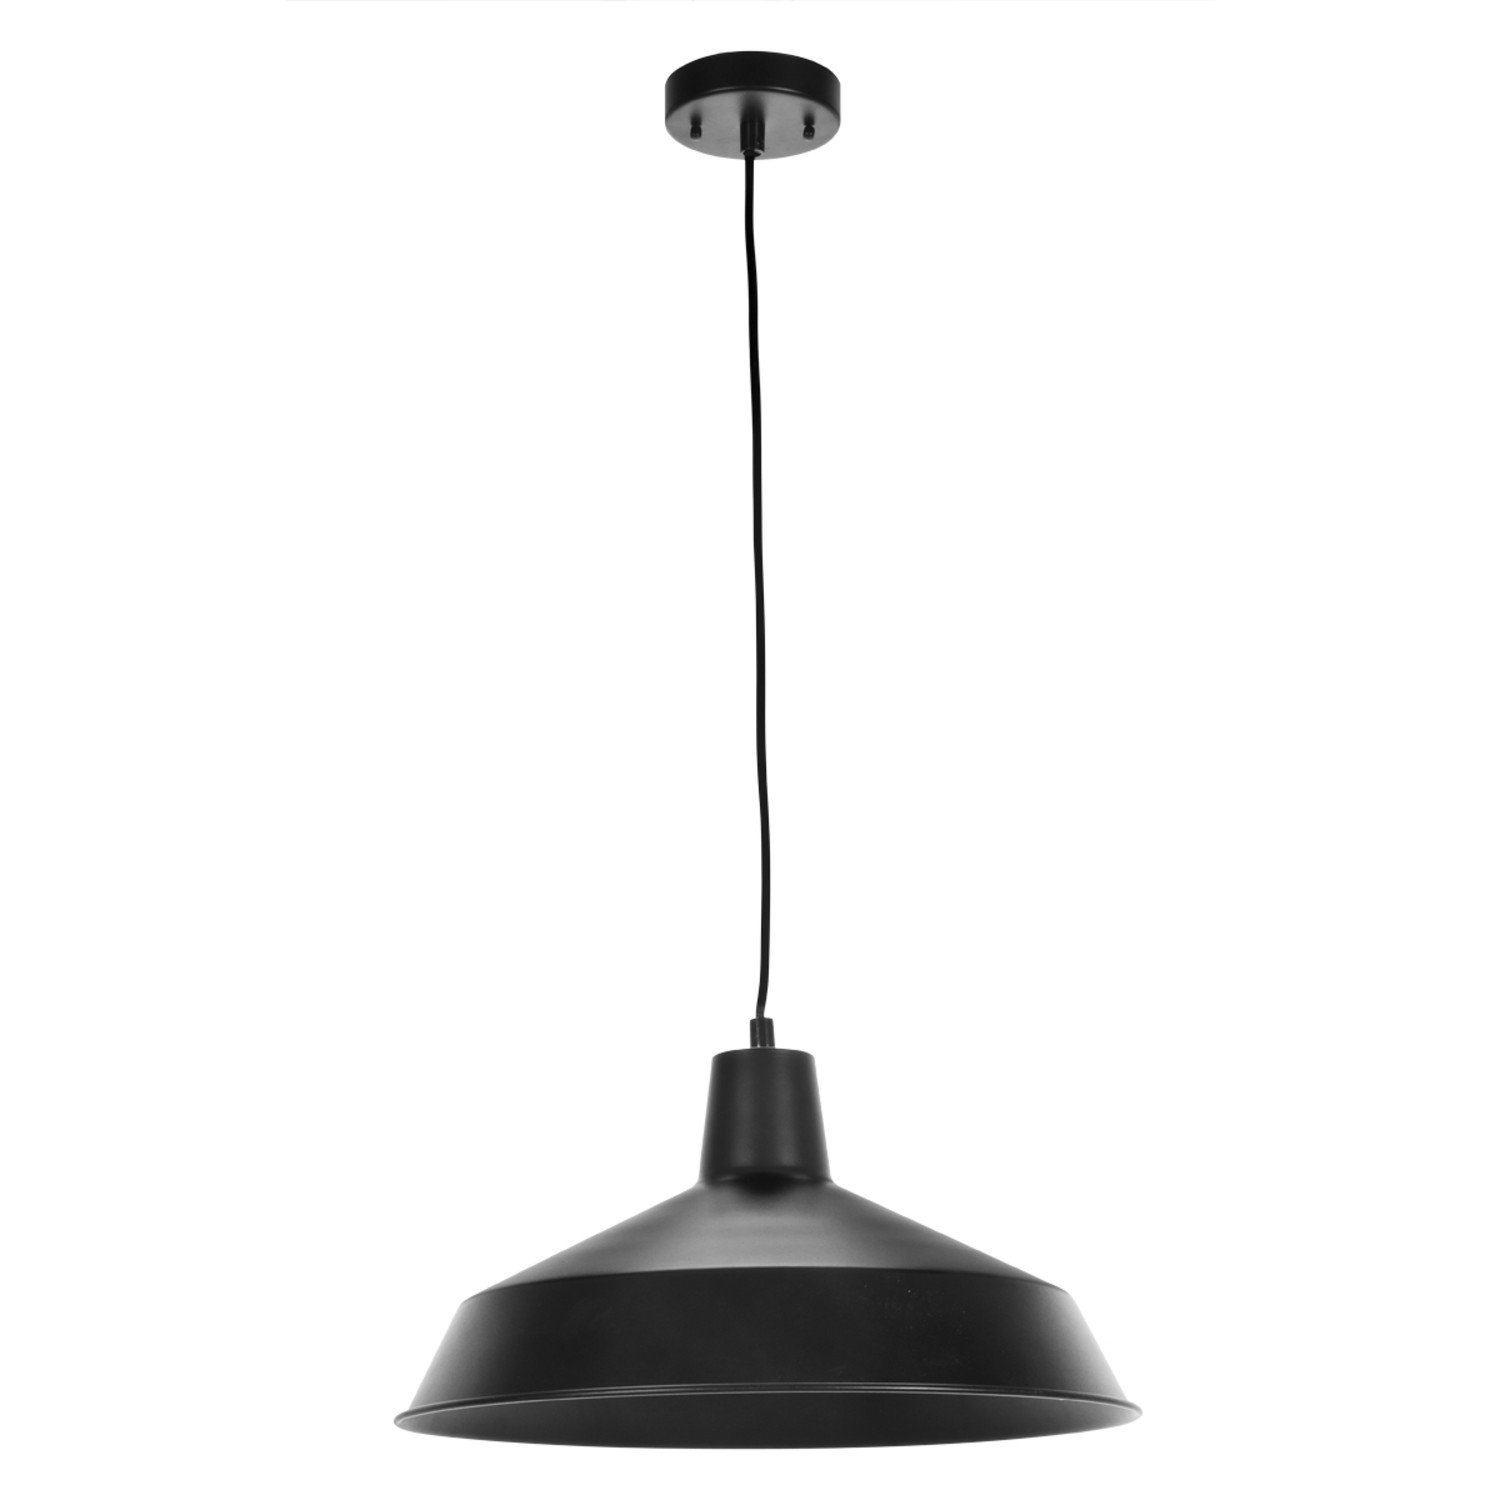 Globe Electric Barnyard 1-Light 16'' Industrial Warehouse Pendant, Matte Black Finish, 65155